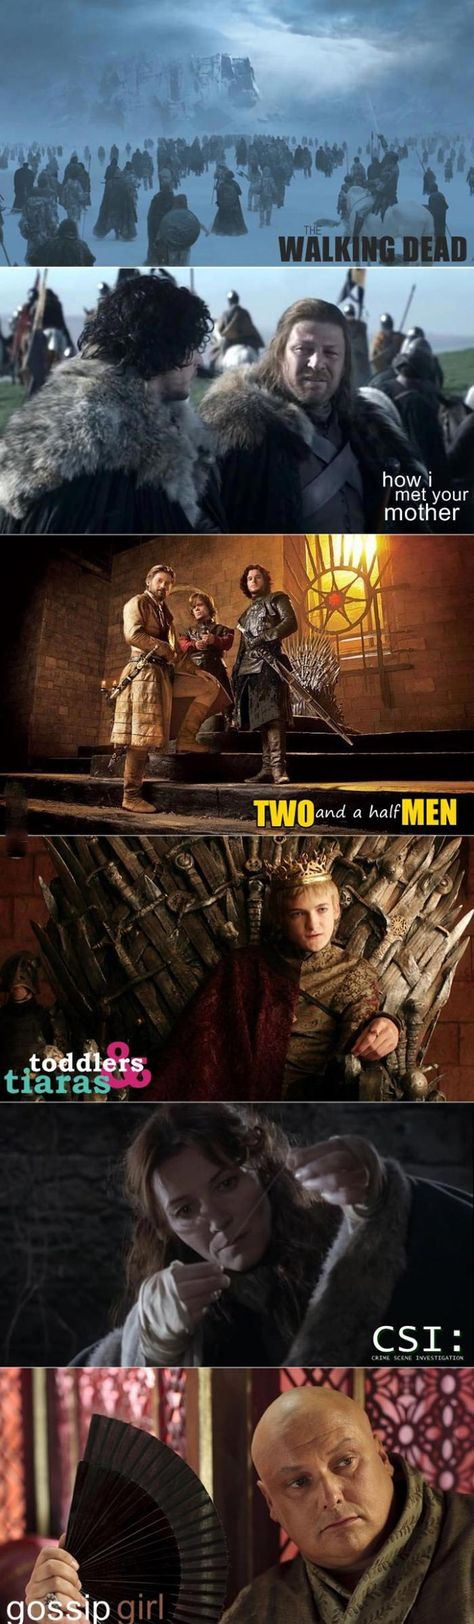 Funny pictures about Game of Thrones as other popular TV shows. Oh, and cool pics about Game of Thrones as other popular TV shows. Also, Game of Thrones as other popular TV shows.